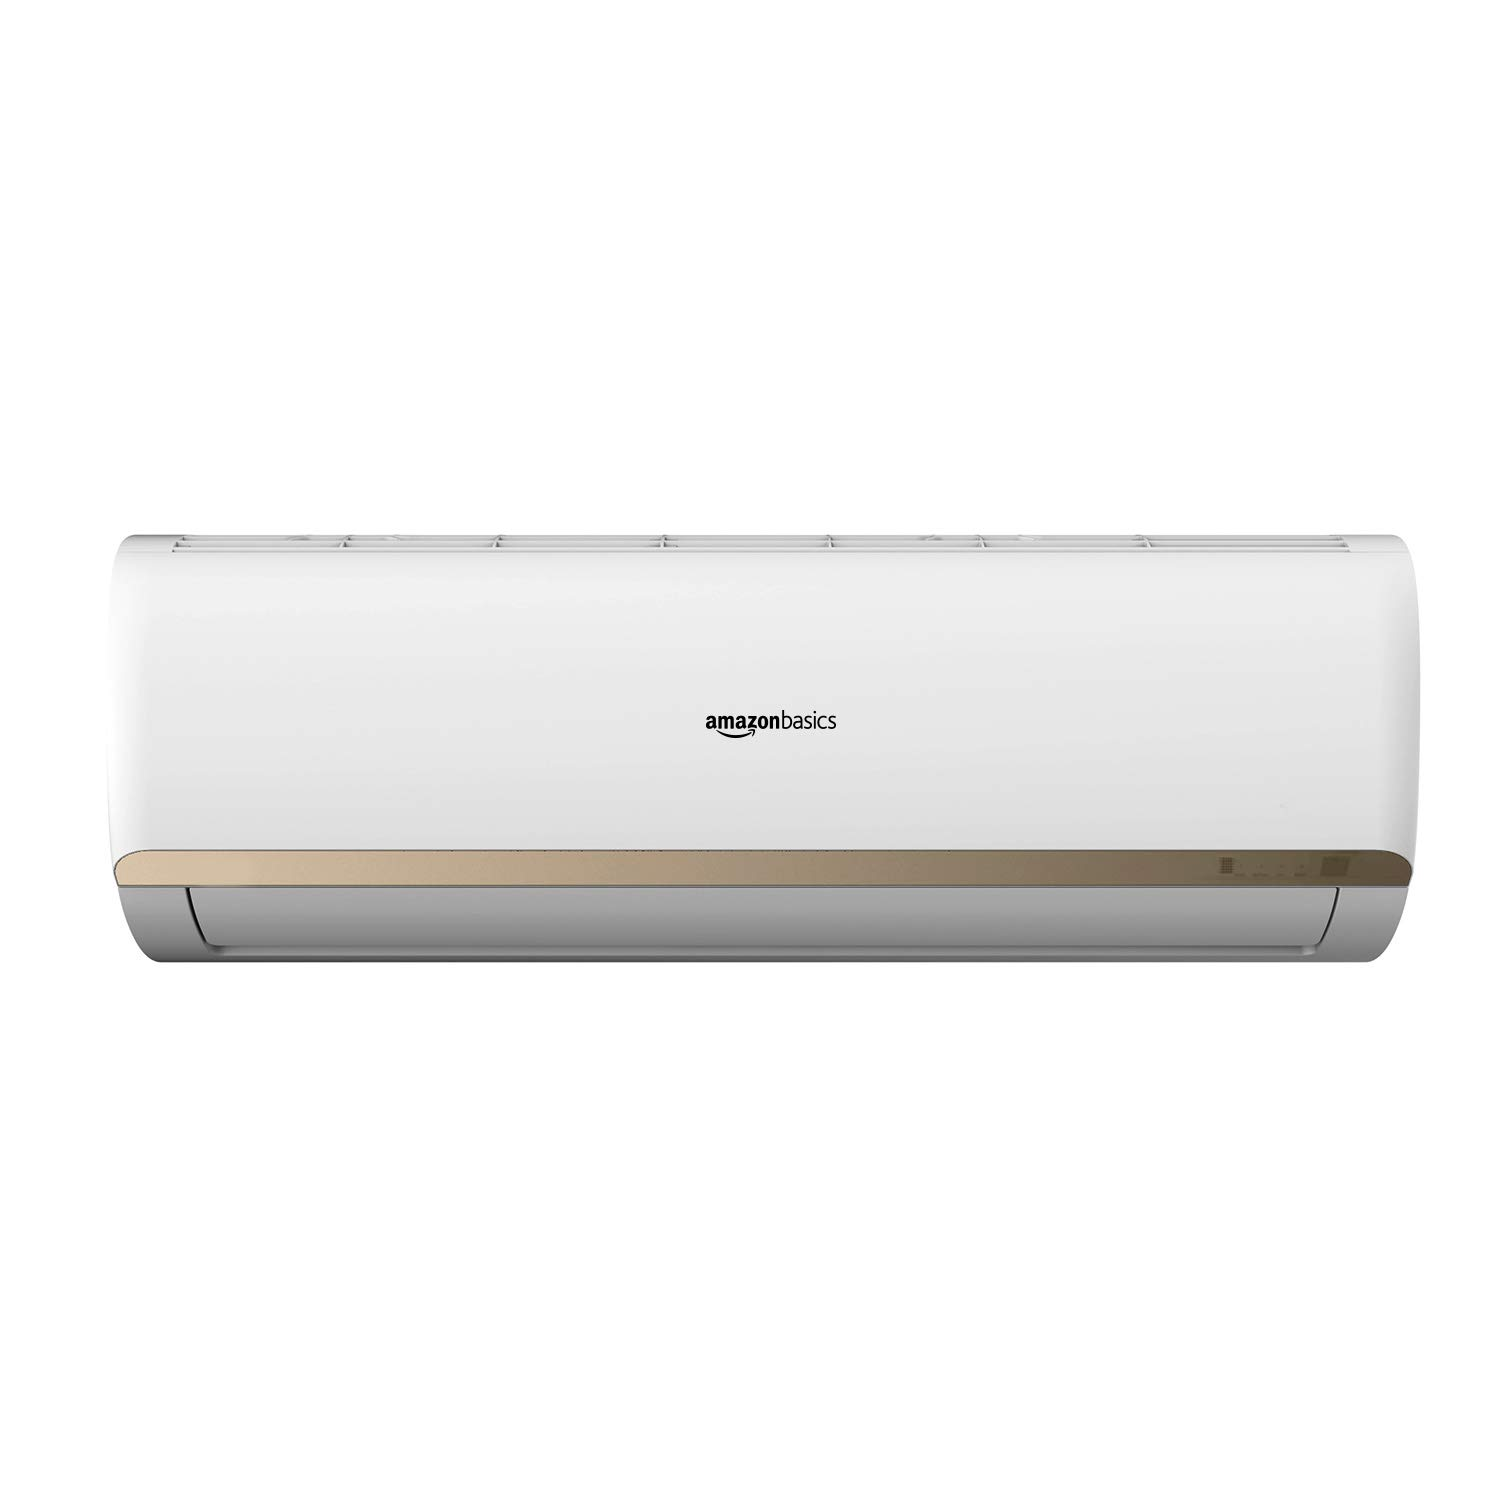 AmazonBasics 1 Ton 3 Star 2020 Inverter Split AC with High Density filter (Copper Condenser, White)